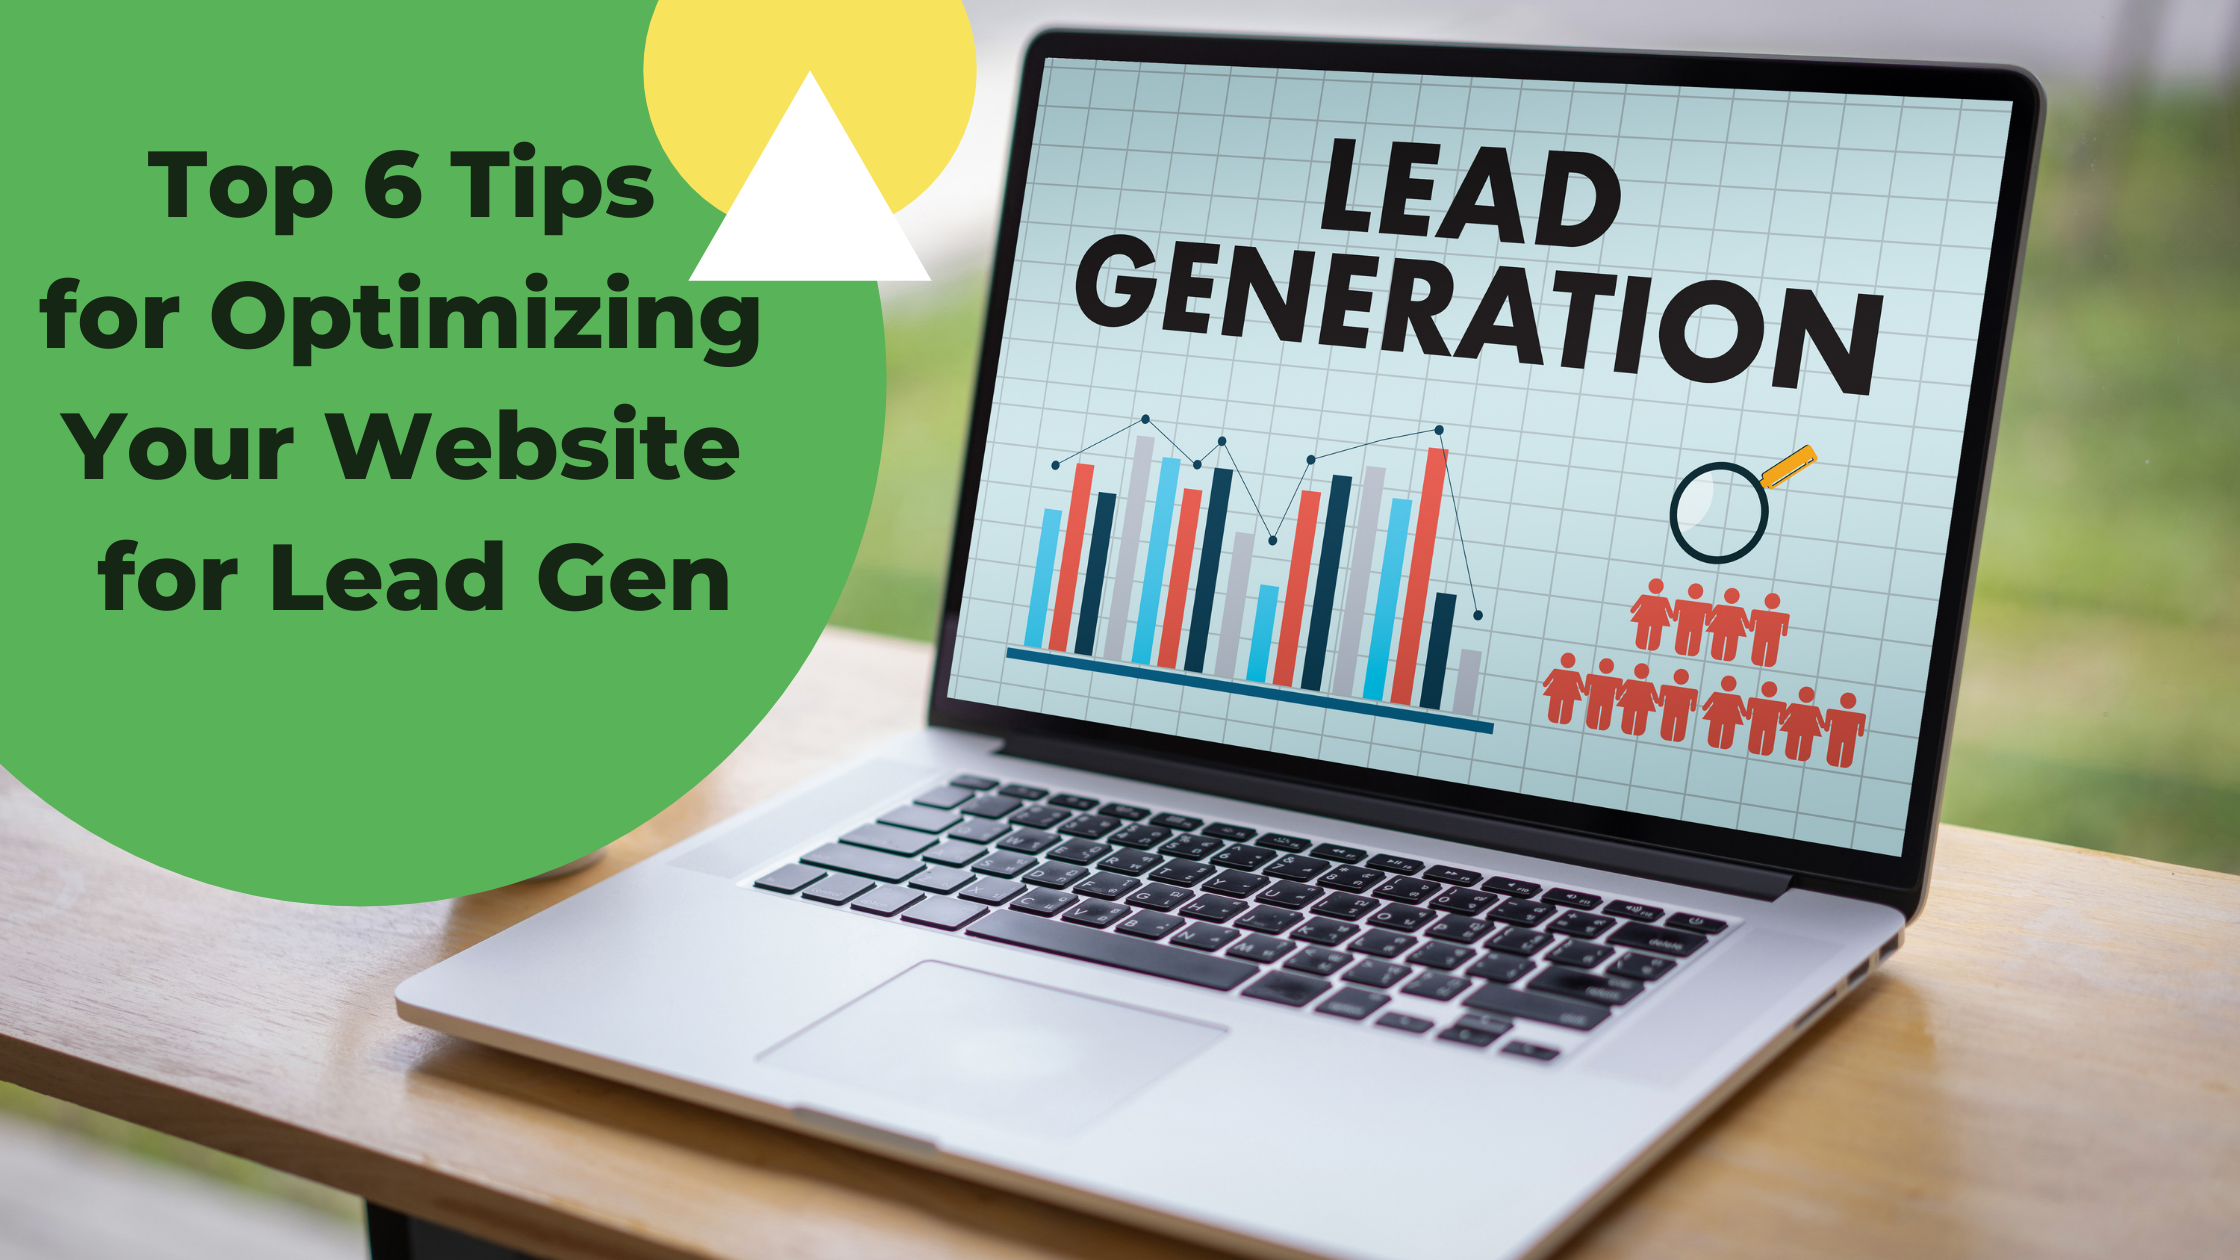 Top 6 Tips for Optimizing Your Website for Lead Generation